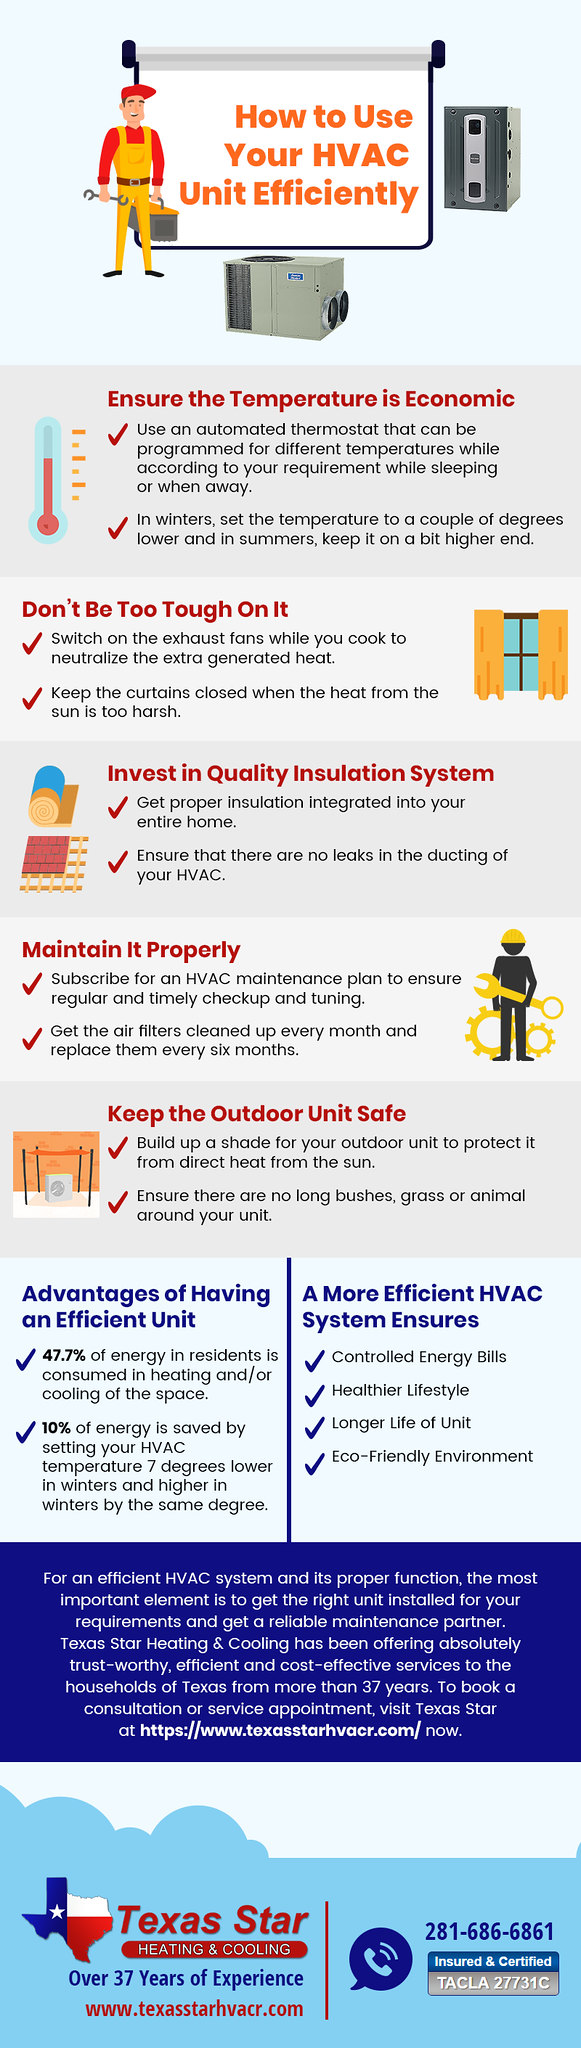 How to Use Your HVAC Unit Efficiently